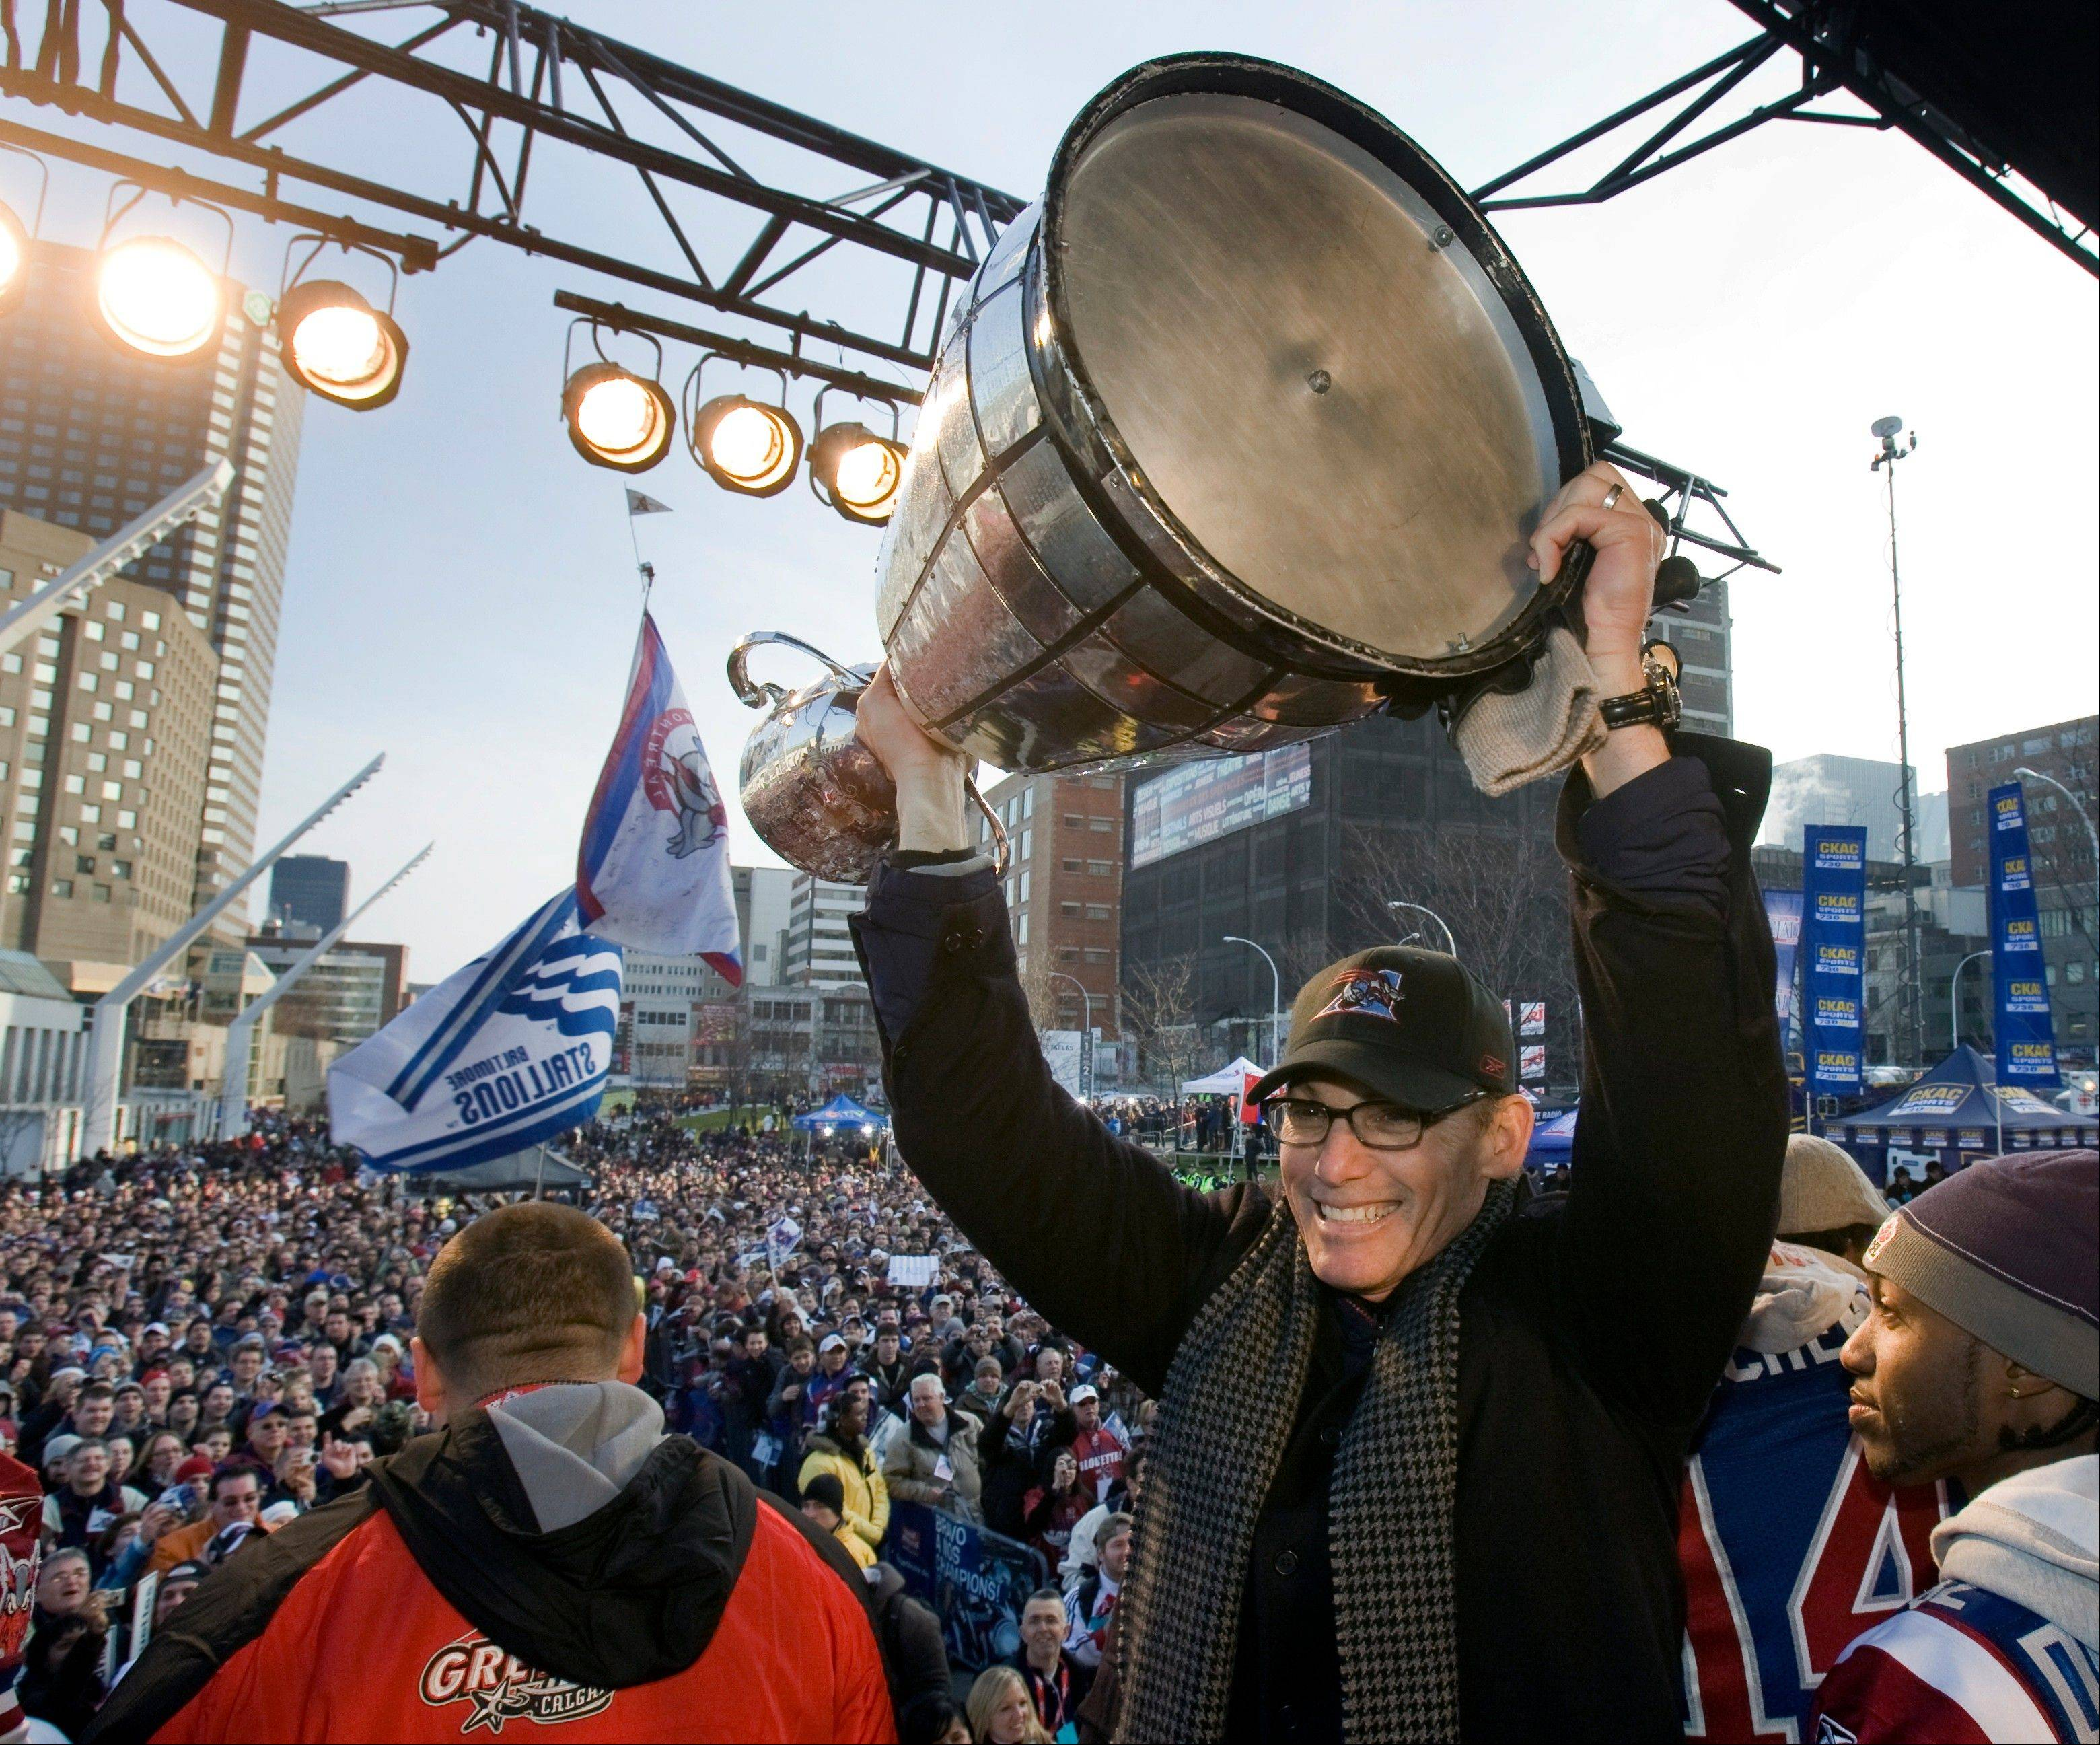 In this Dec. 2, 2009 file photo, Montreal Alouettes head coach Marc Trestman holds up the Grey Cup for fans during the victory parade in Montreal. The Bears have hired Trestman to replace the fired Lovie Smith, hoping he can get the most out of quarterback Jay Cutler and make Chicago a playoff team on a consistent basis. (AP Photo/The Canadian Press, Ryan Remiorz, File)